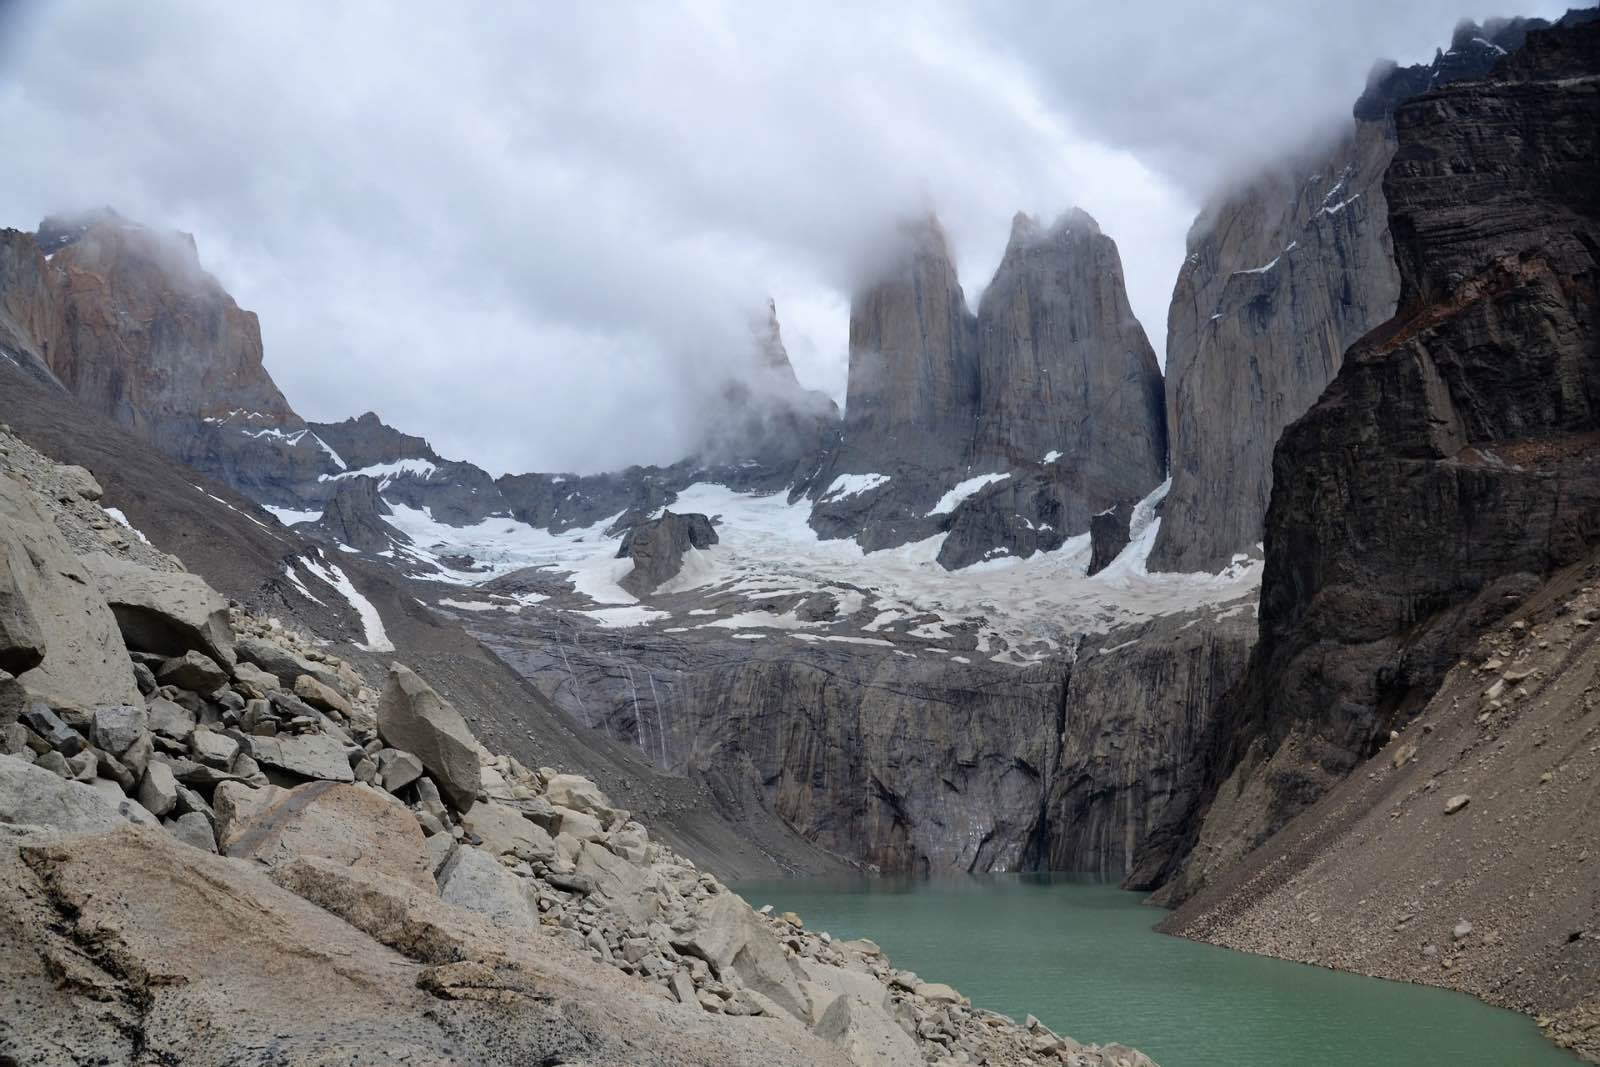 Torres del Paine covered in cloud